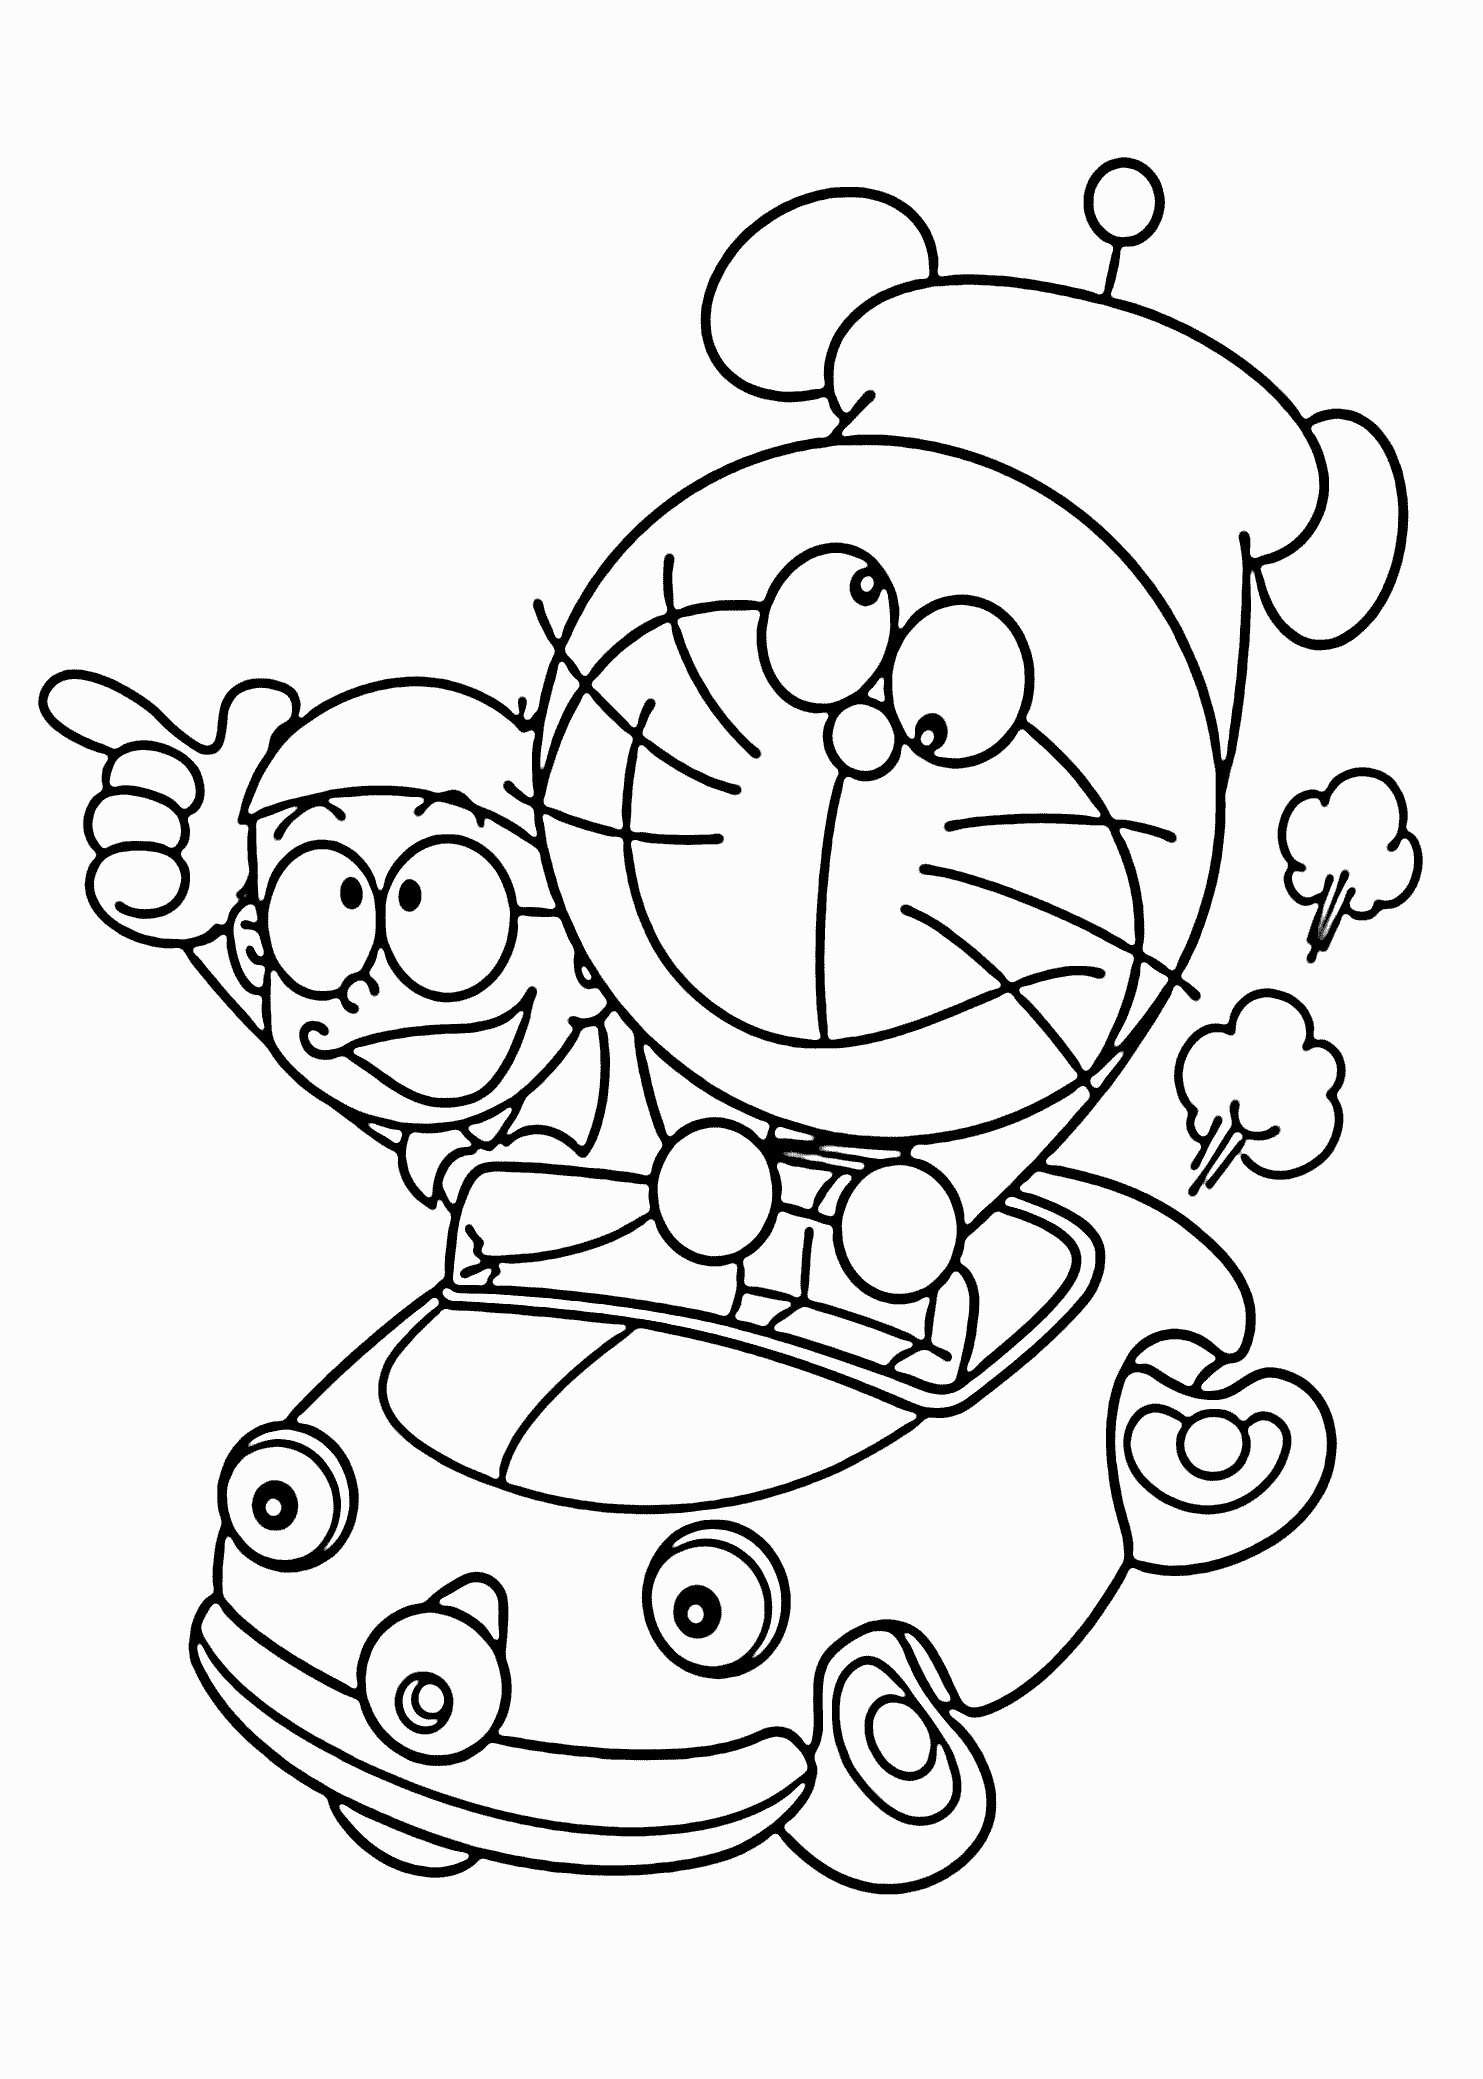 Get Well Coloring Pages Emotions Coloring Pages For Preschoolers Fresh Get Well Coloring